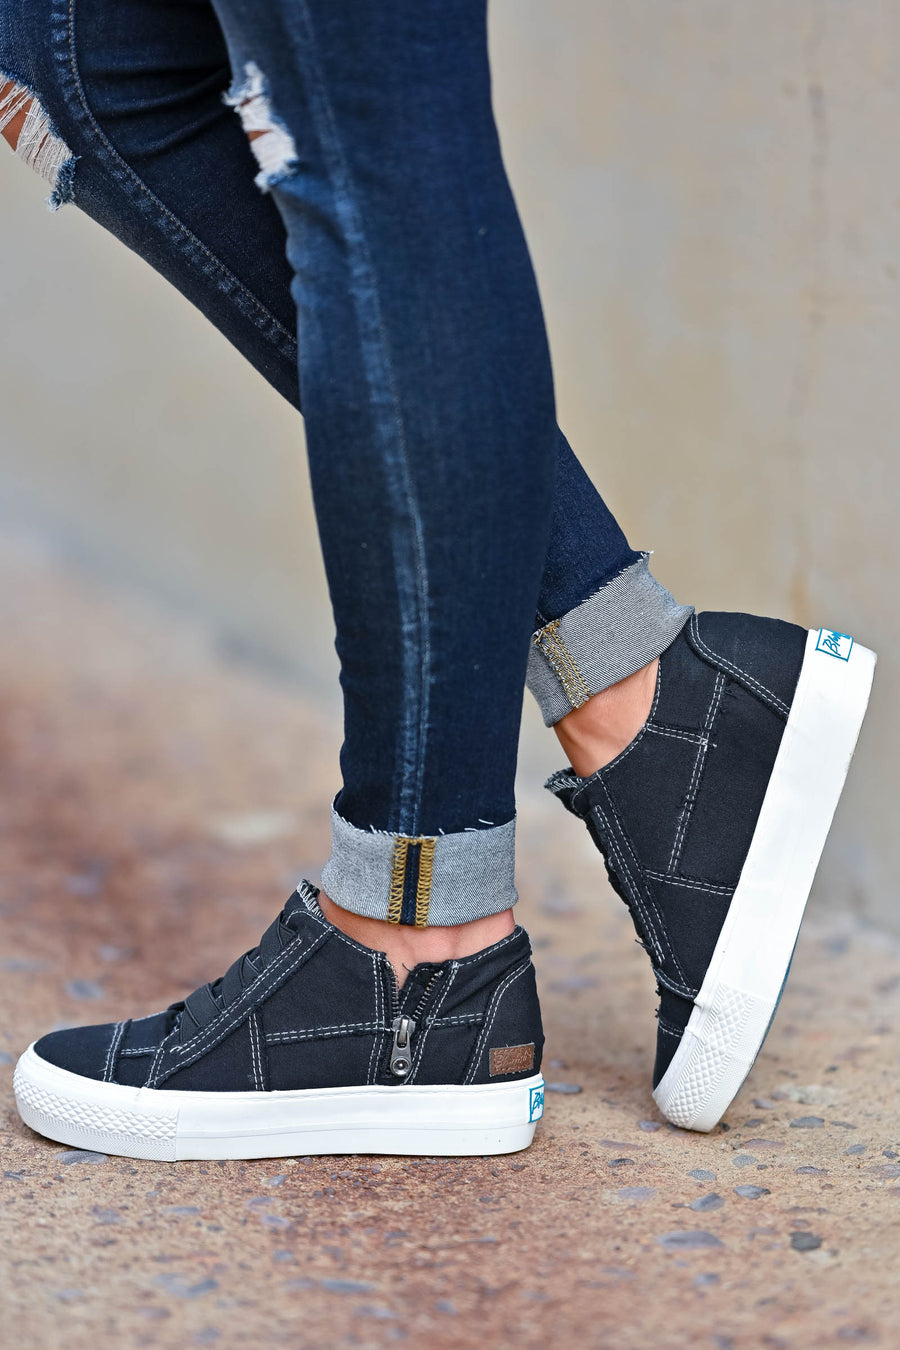 Walk That Way Wedge Sneaker - Black omen's wedge sneakers featuring elastic ribbon design, exposed seam details, side zipper, and padded insole. A wedge sole hides under the sneaker's casual exterior, creating an ultra-flattering limb-lengthening illusion closet candy side